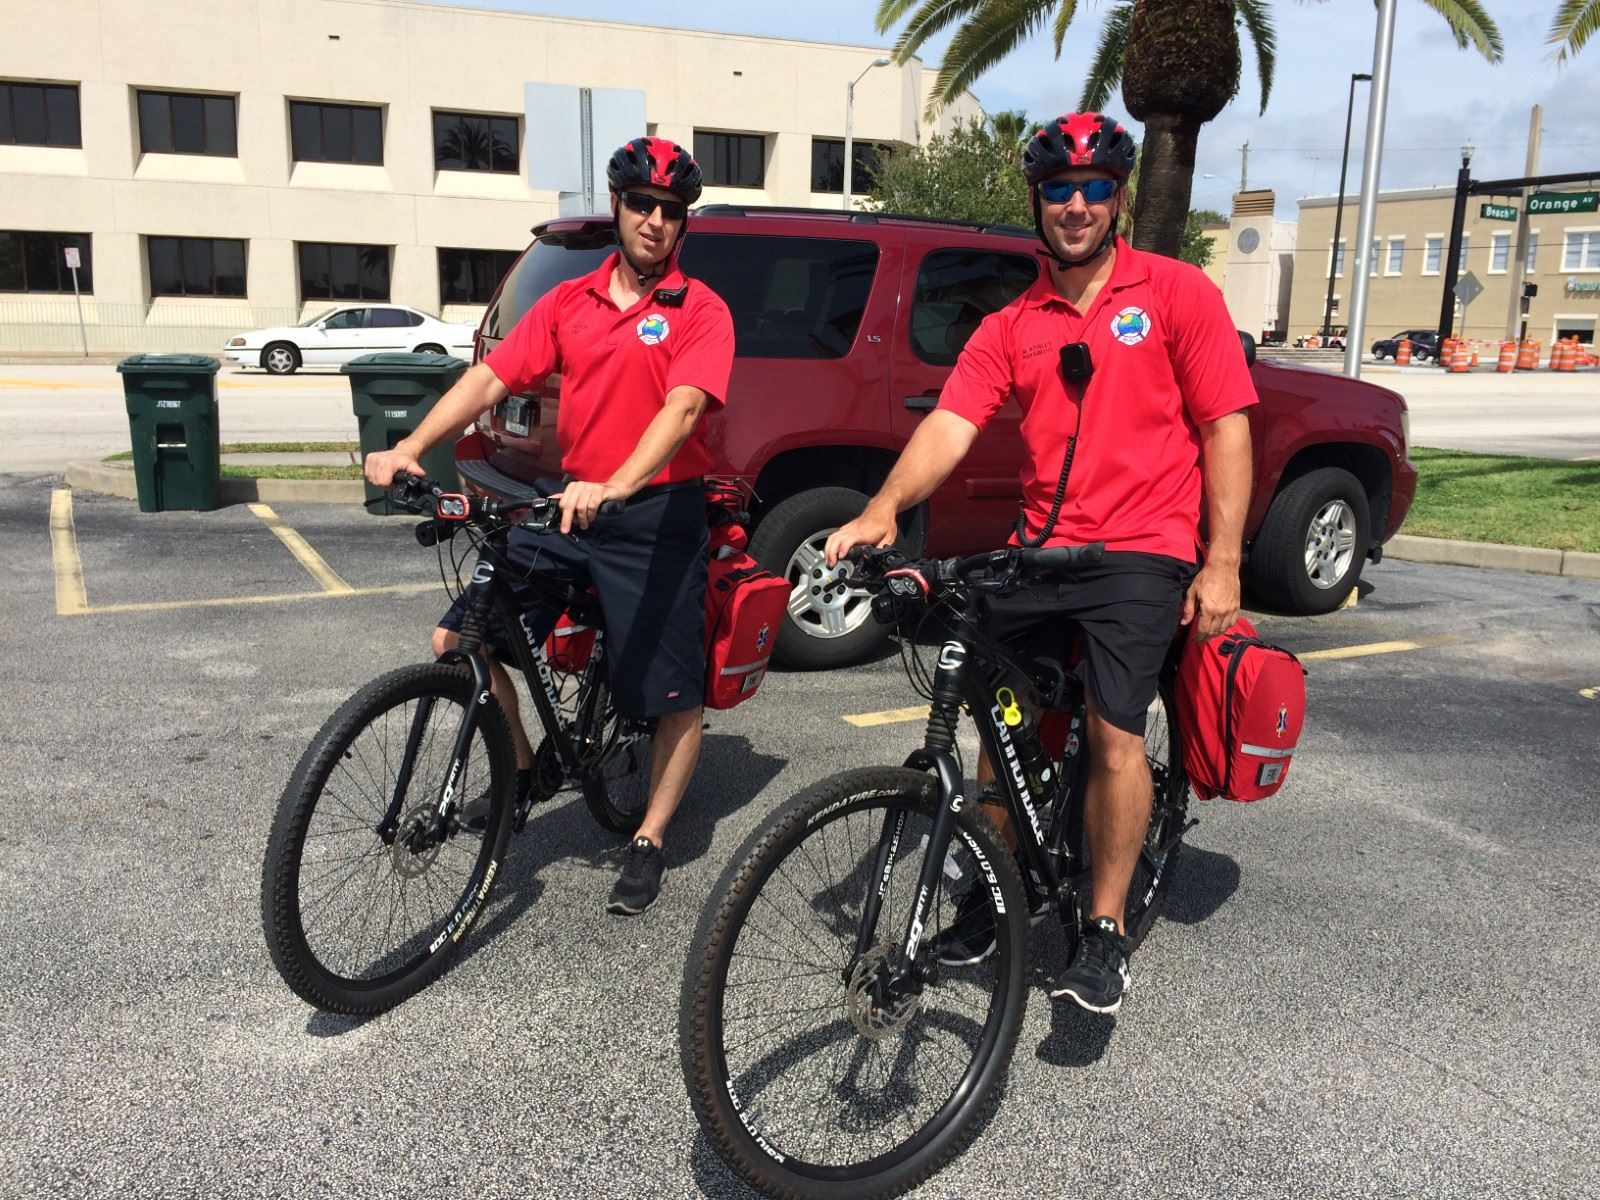 Daytona Beach Fire Department Bicycle Team